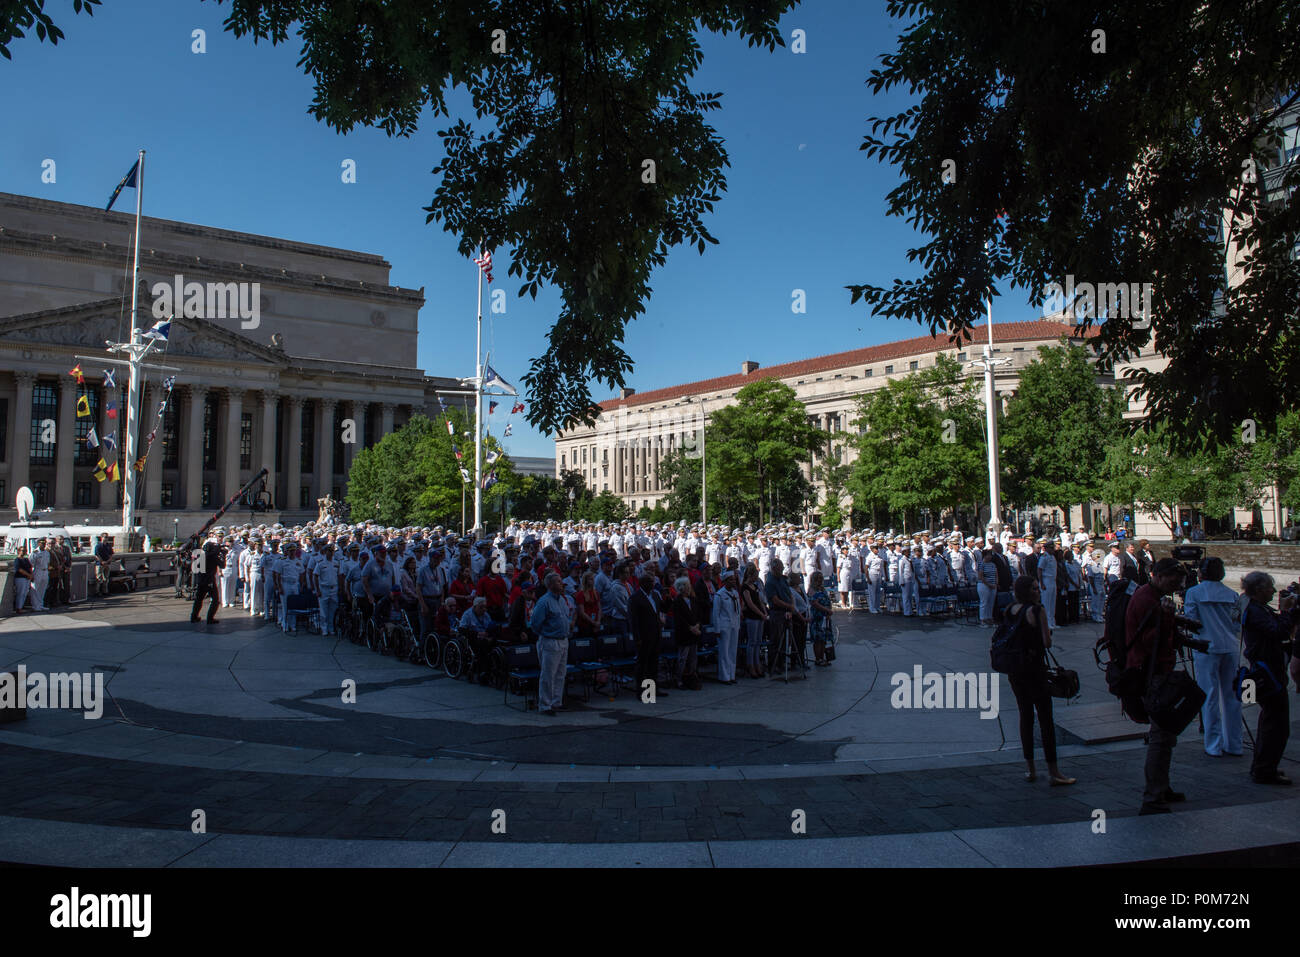 180605-N-HG258-1000 WASHINGTON (June 5, 2018) Members of the U.S. Navy Ceremonial band perform ceremonial music at the U.S. Navy Memorial in Washington, D.C., during the commemoration of the 76th anniversary of the Battle of Midway. The Battle of Midway began on June 4 in 1942 and stands as one of the U.S. Navy's most historically significant naval battles. Fought on the high seas of the Pacific more than half a century ago, this battle altered the course of the war in the Pacific and thereby shaped the outcome of world events. (U.S. Navy photo by Senior Chief Musician Stephen Hassay/Released) - Stock Image